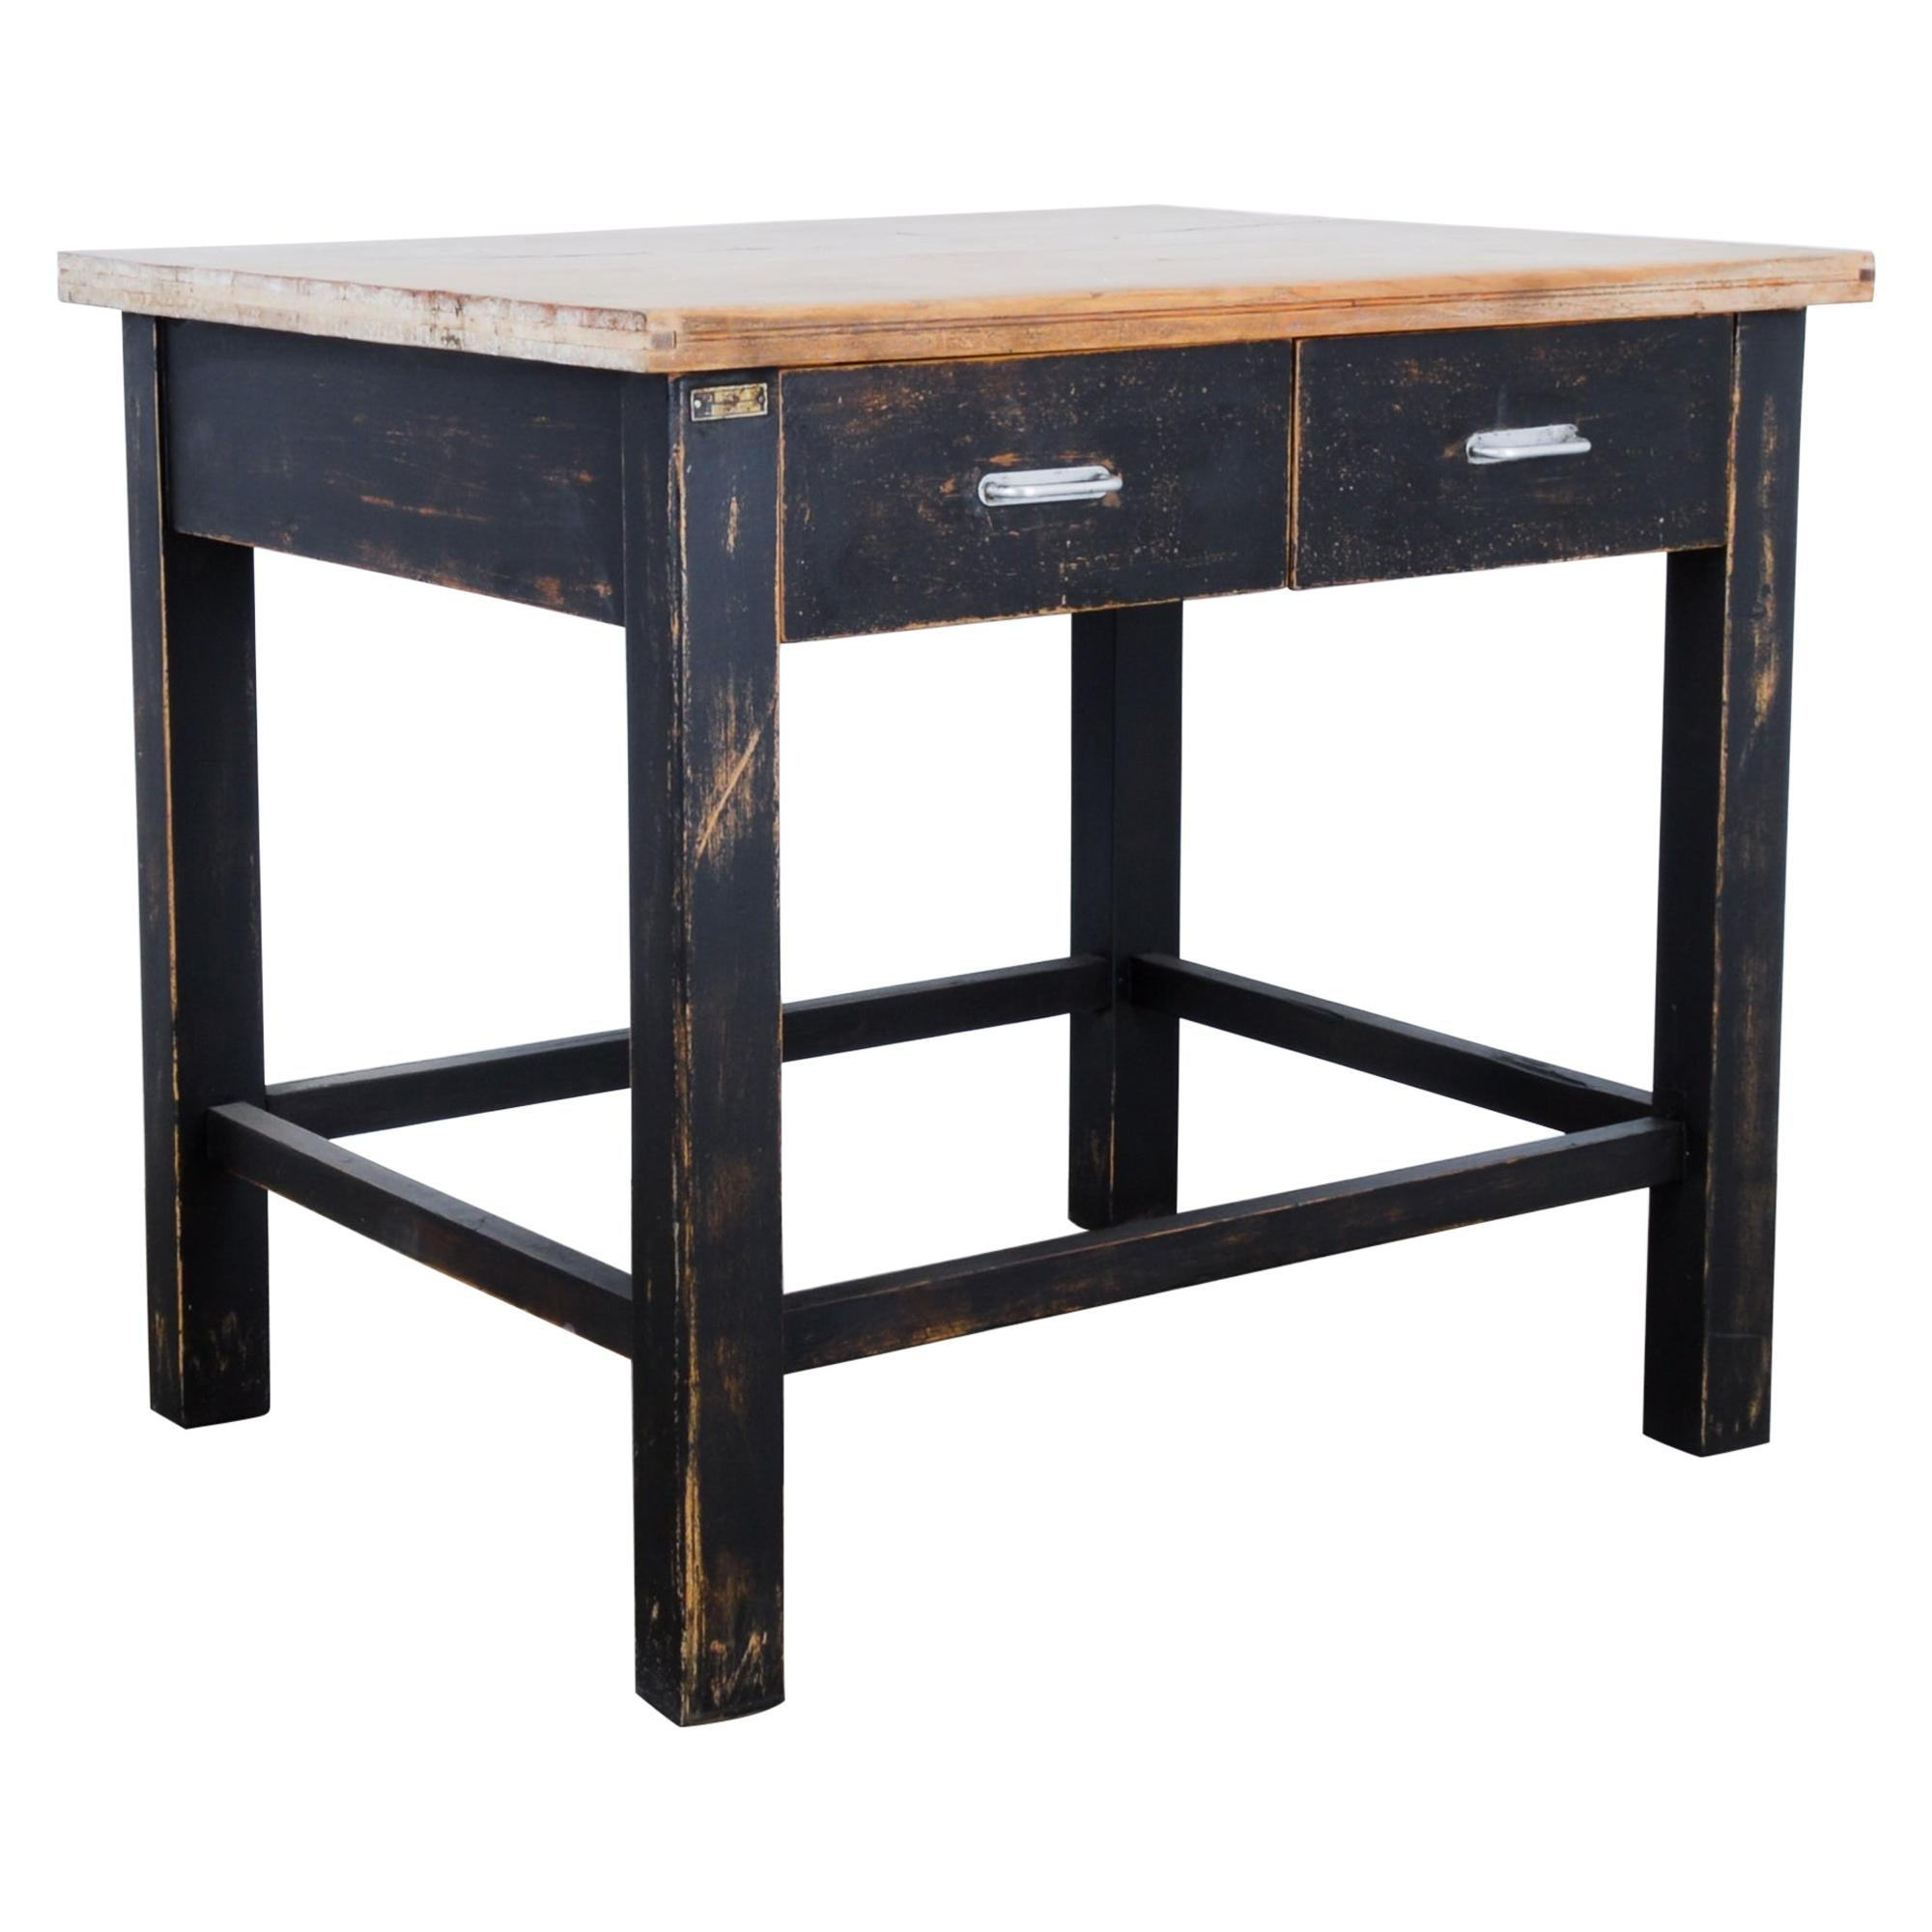 1980s Central European Wooden Work Table